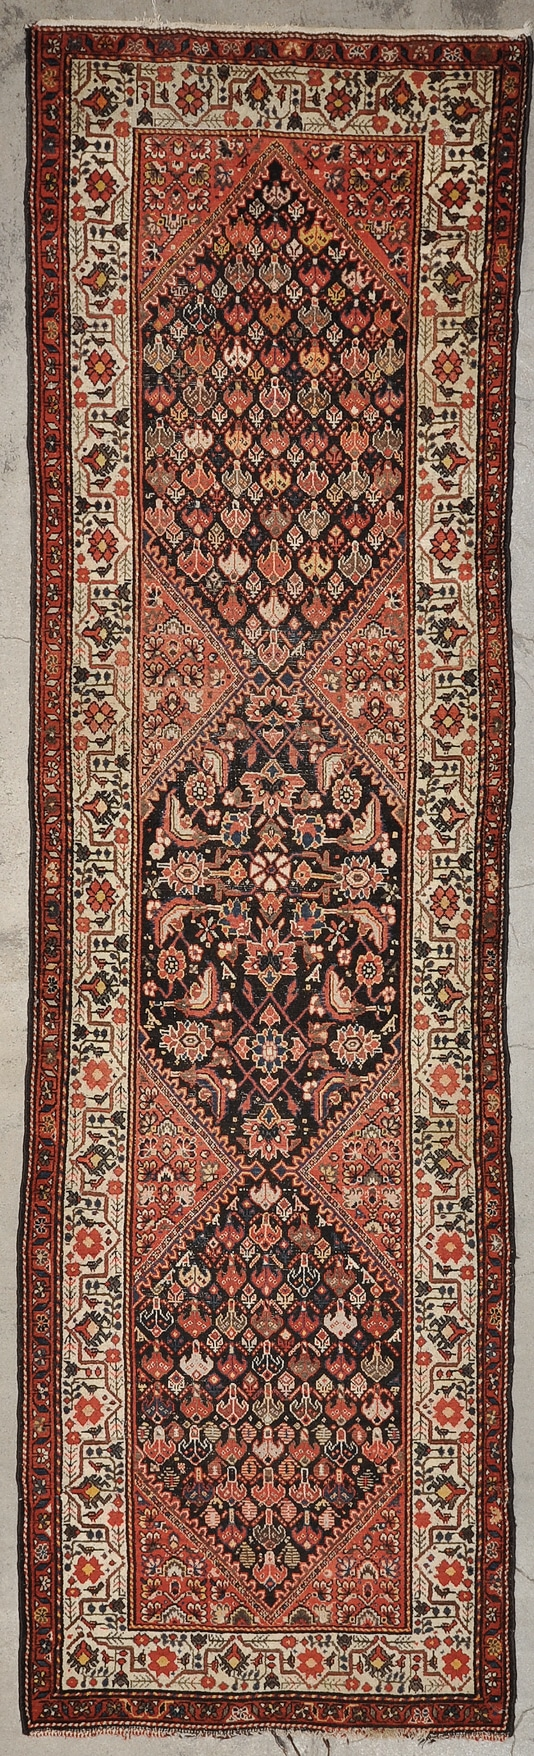 Fine Malayer Runner rugs and more oriental carpet 43894-